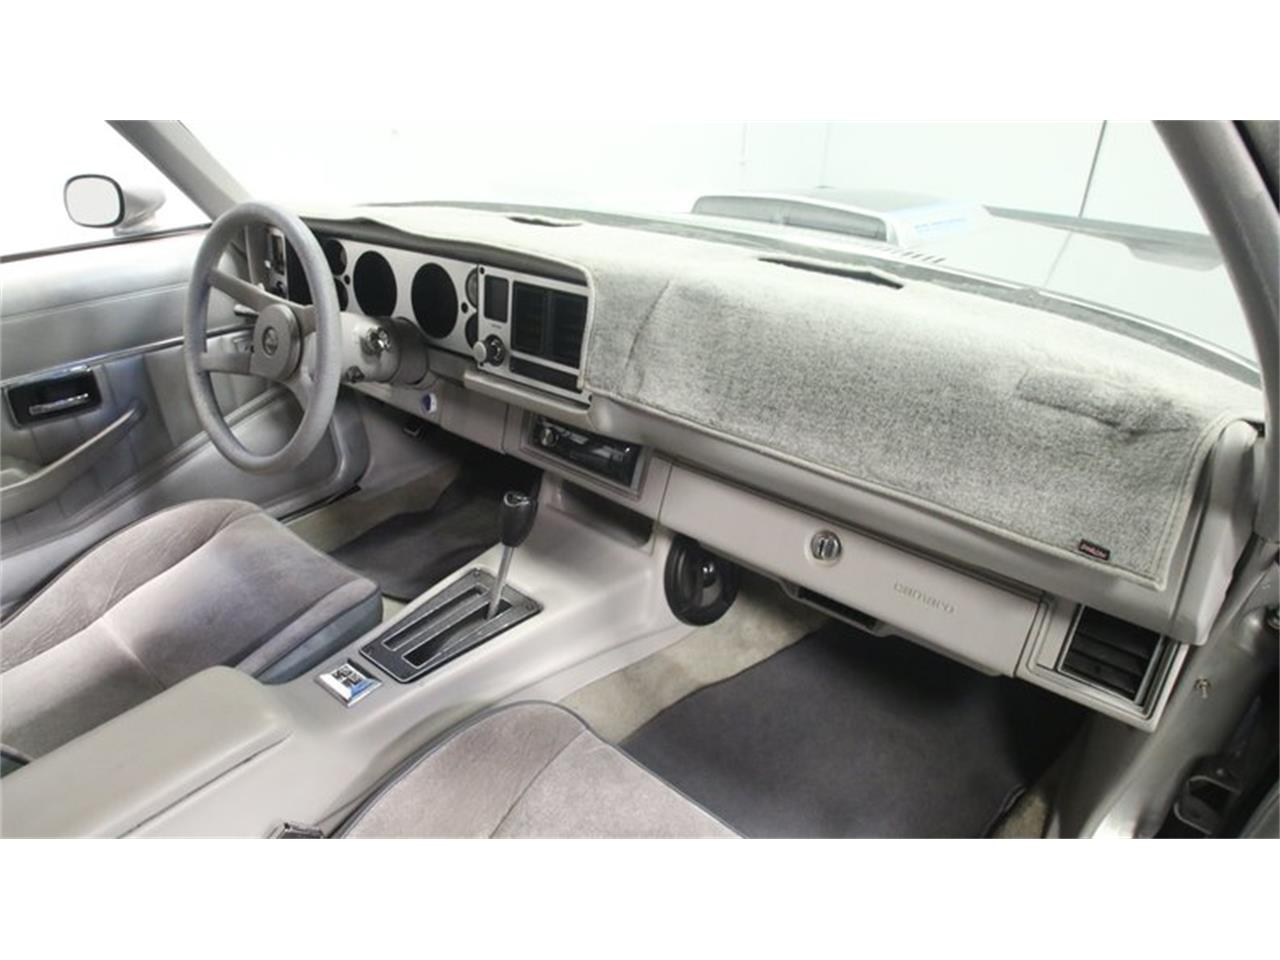 Large Picture of 1980 Chevrolet Camaro - $23,995.00 Offered by Streetside Classics - Atlanta - O8Z8